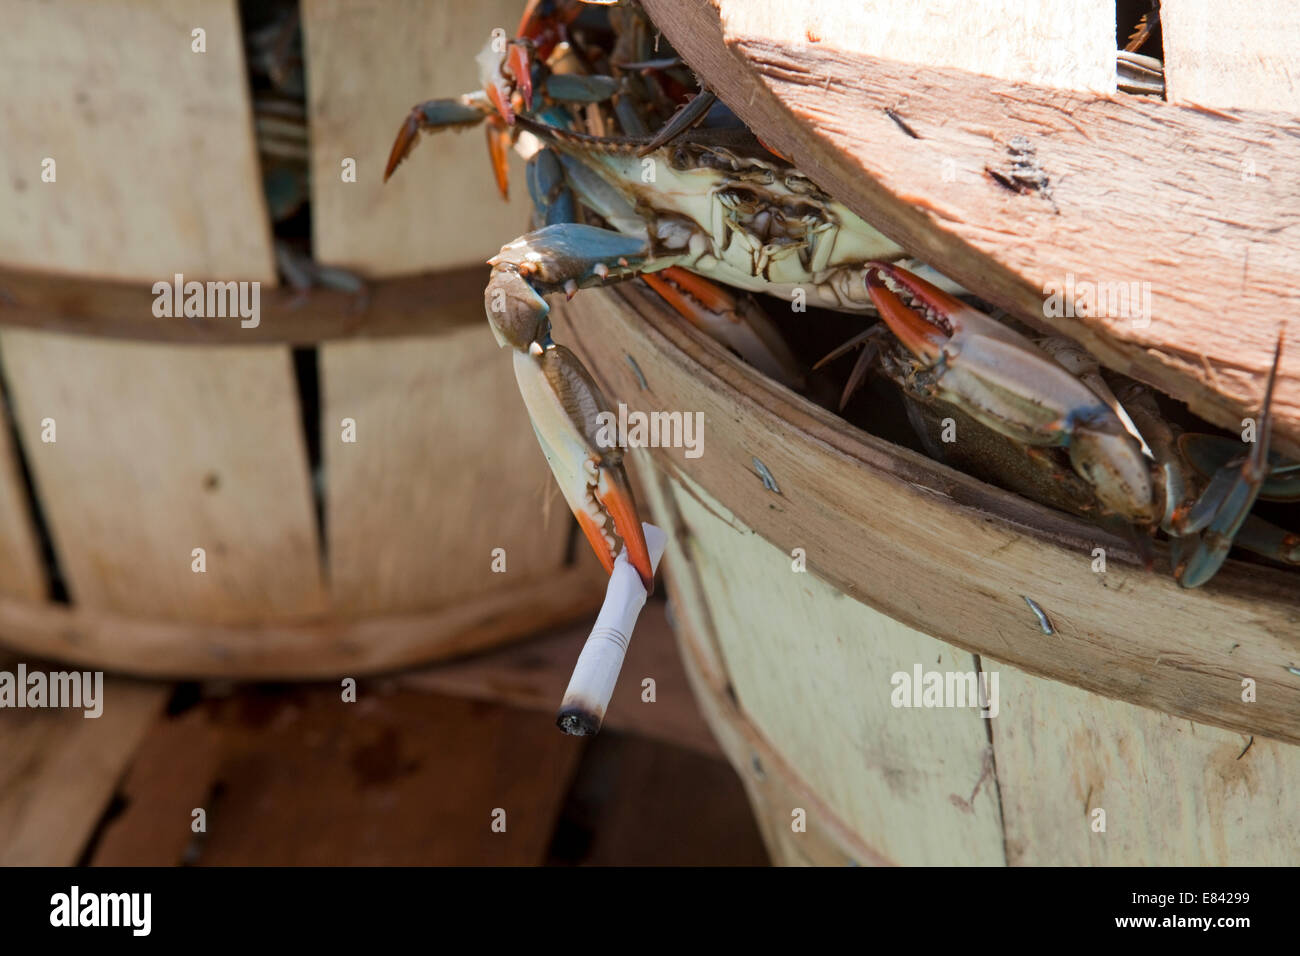 Crab peering from crab bushel holding cigarette in pincer, close up, Chesapeake Bay, Maryland, USA - Stock Image